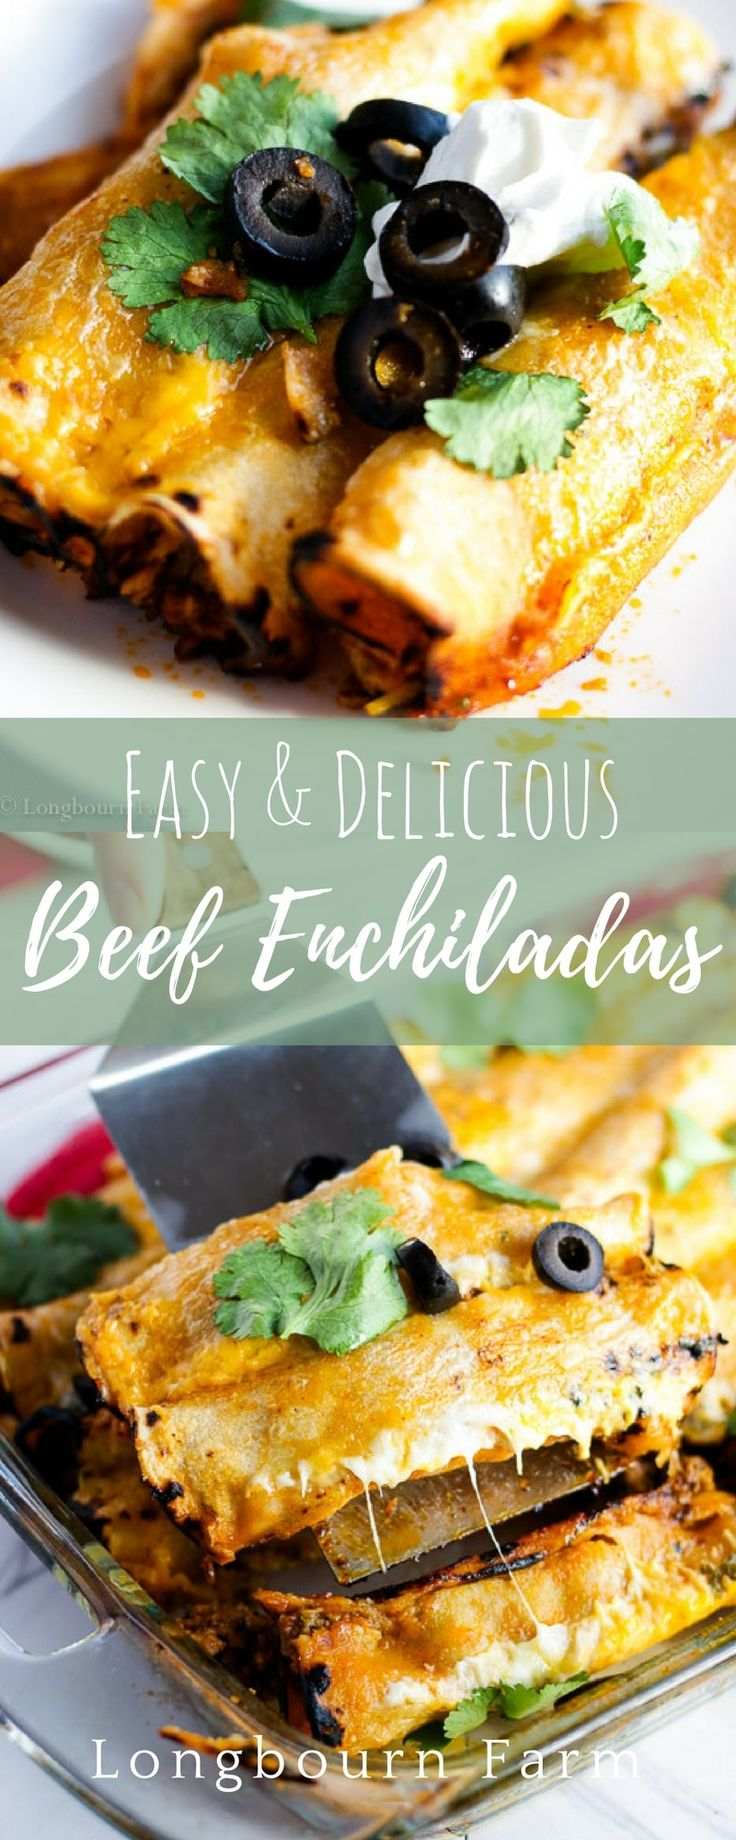 Easy beef enchilada recipe! This recipe is so good with a completely homemade enchilada sauce that doesn't take a blender to make. SO EASY! Plus 3 ideas for making beef enchilada freezer meals! via @https://www.pinterest.com/longbournfarm/